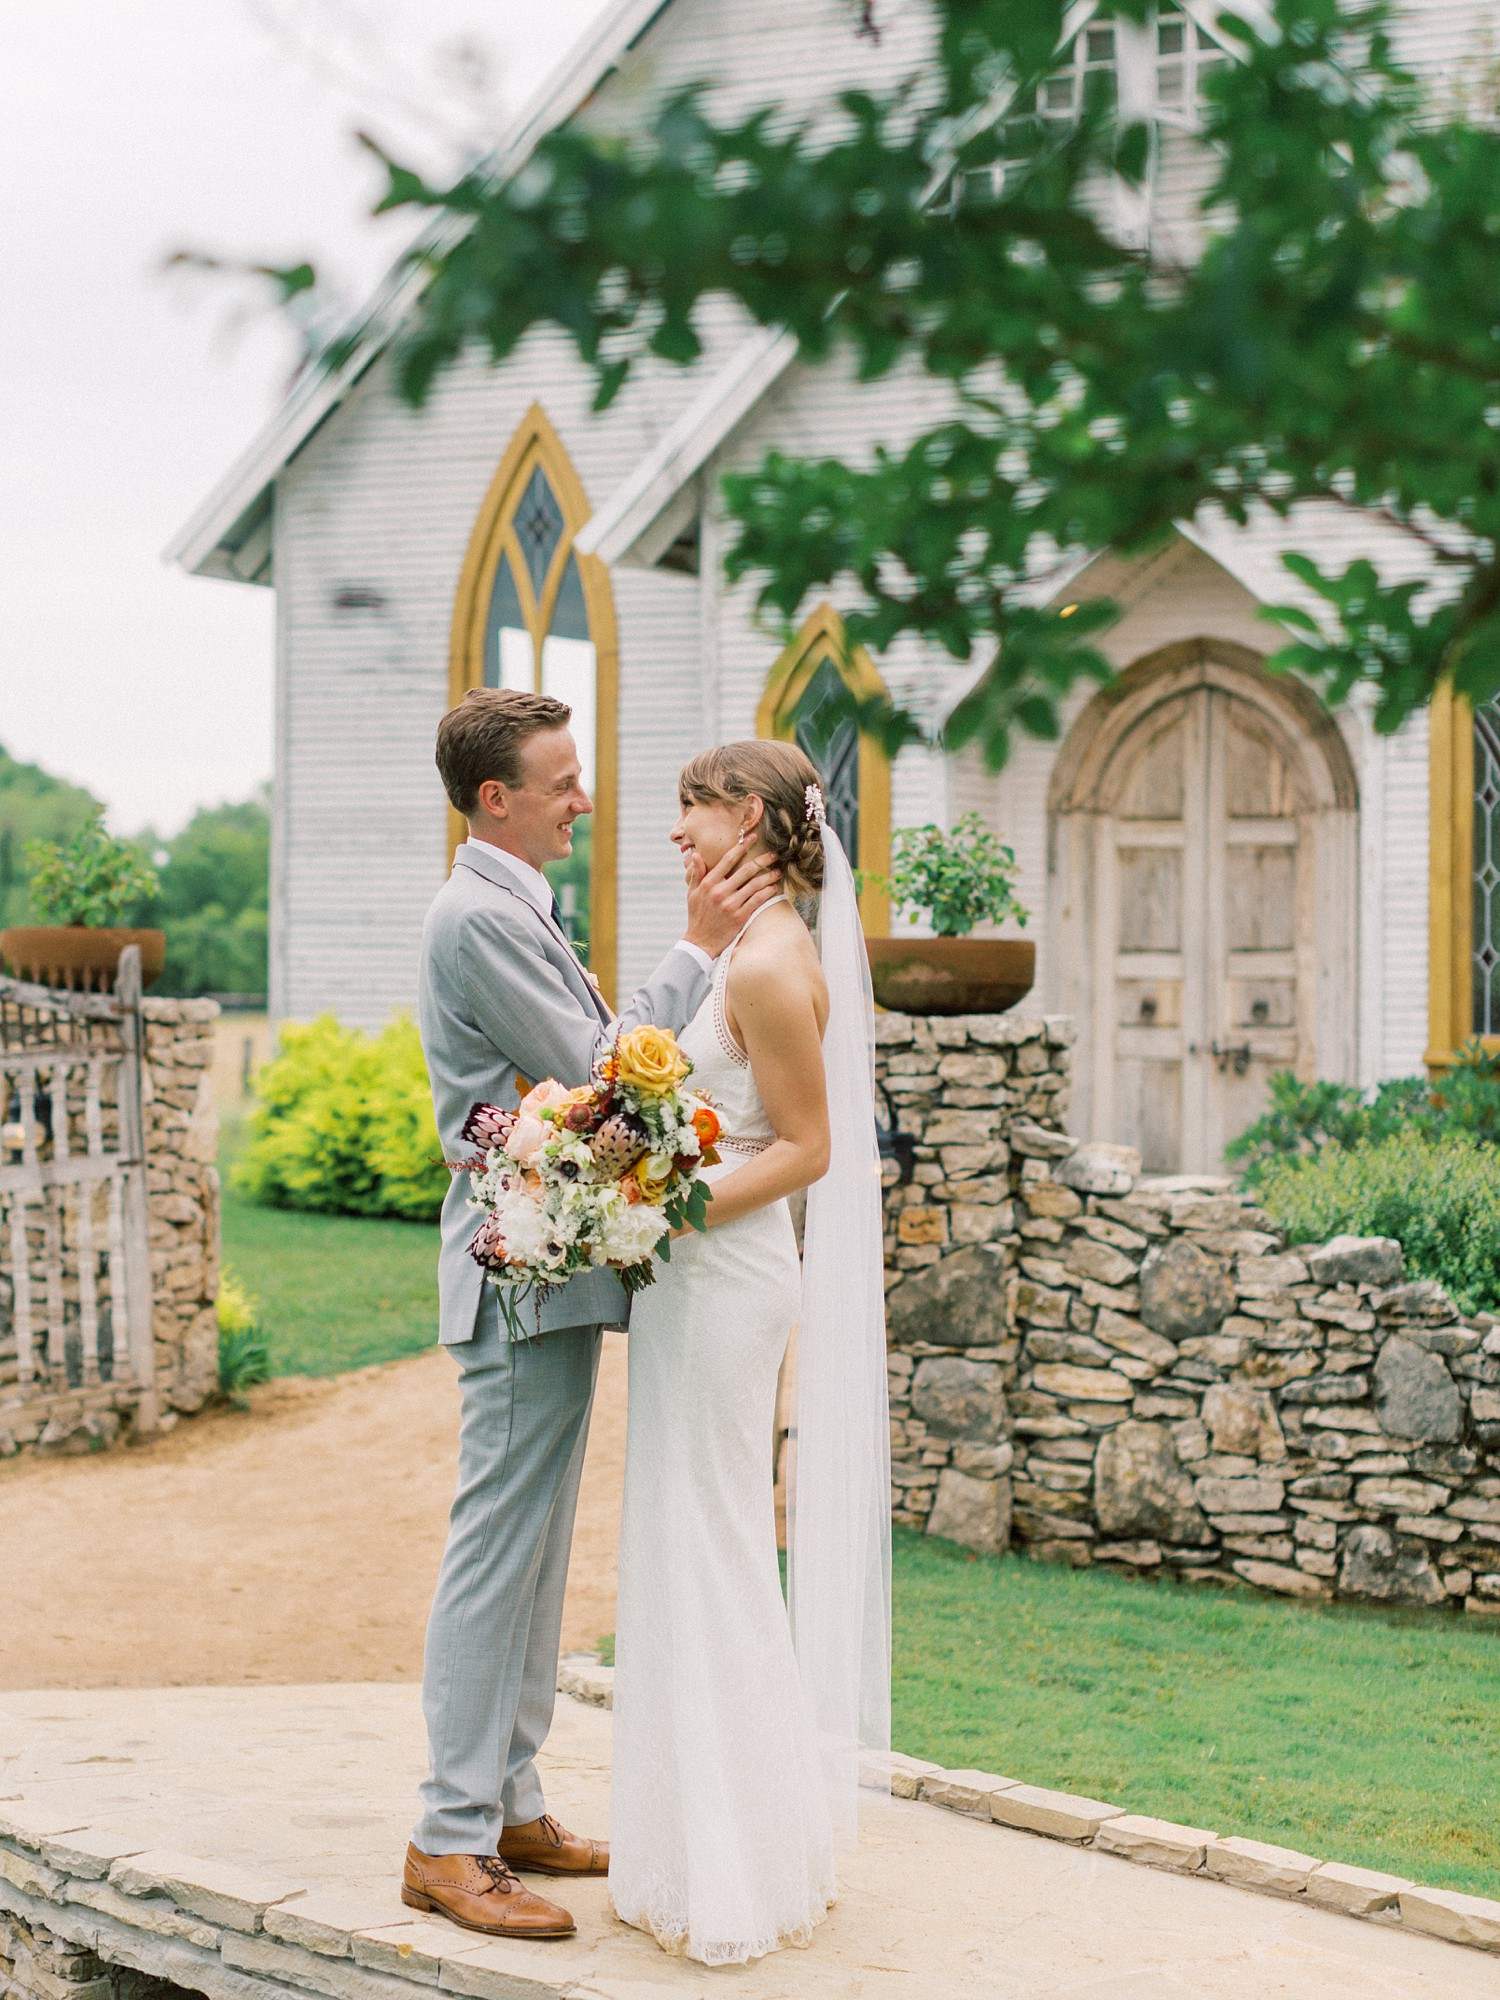 Bride & Groom Photo at Wedding Chapel | Summer Wedding Inspiration | Fort Worth Wedding Photographer | The Brooks at Weatherford